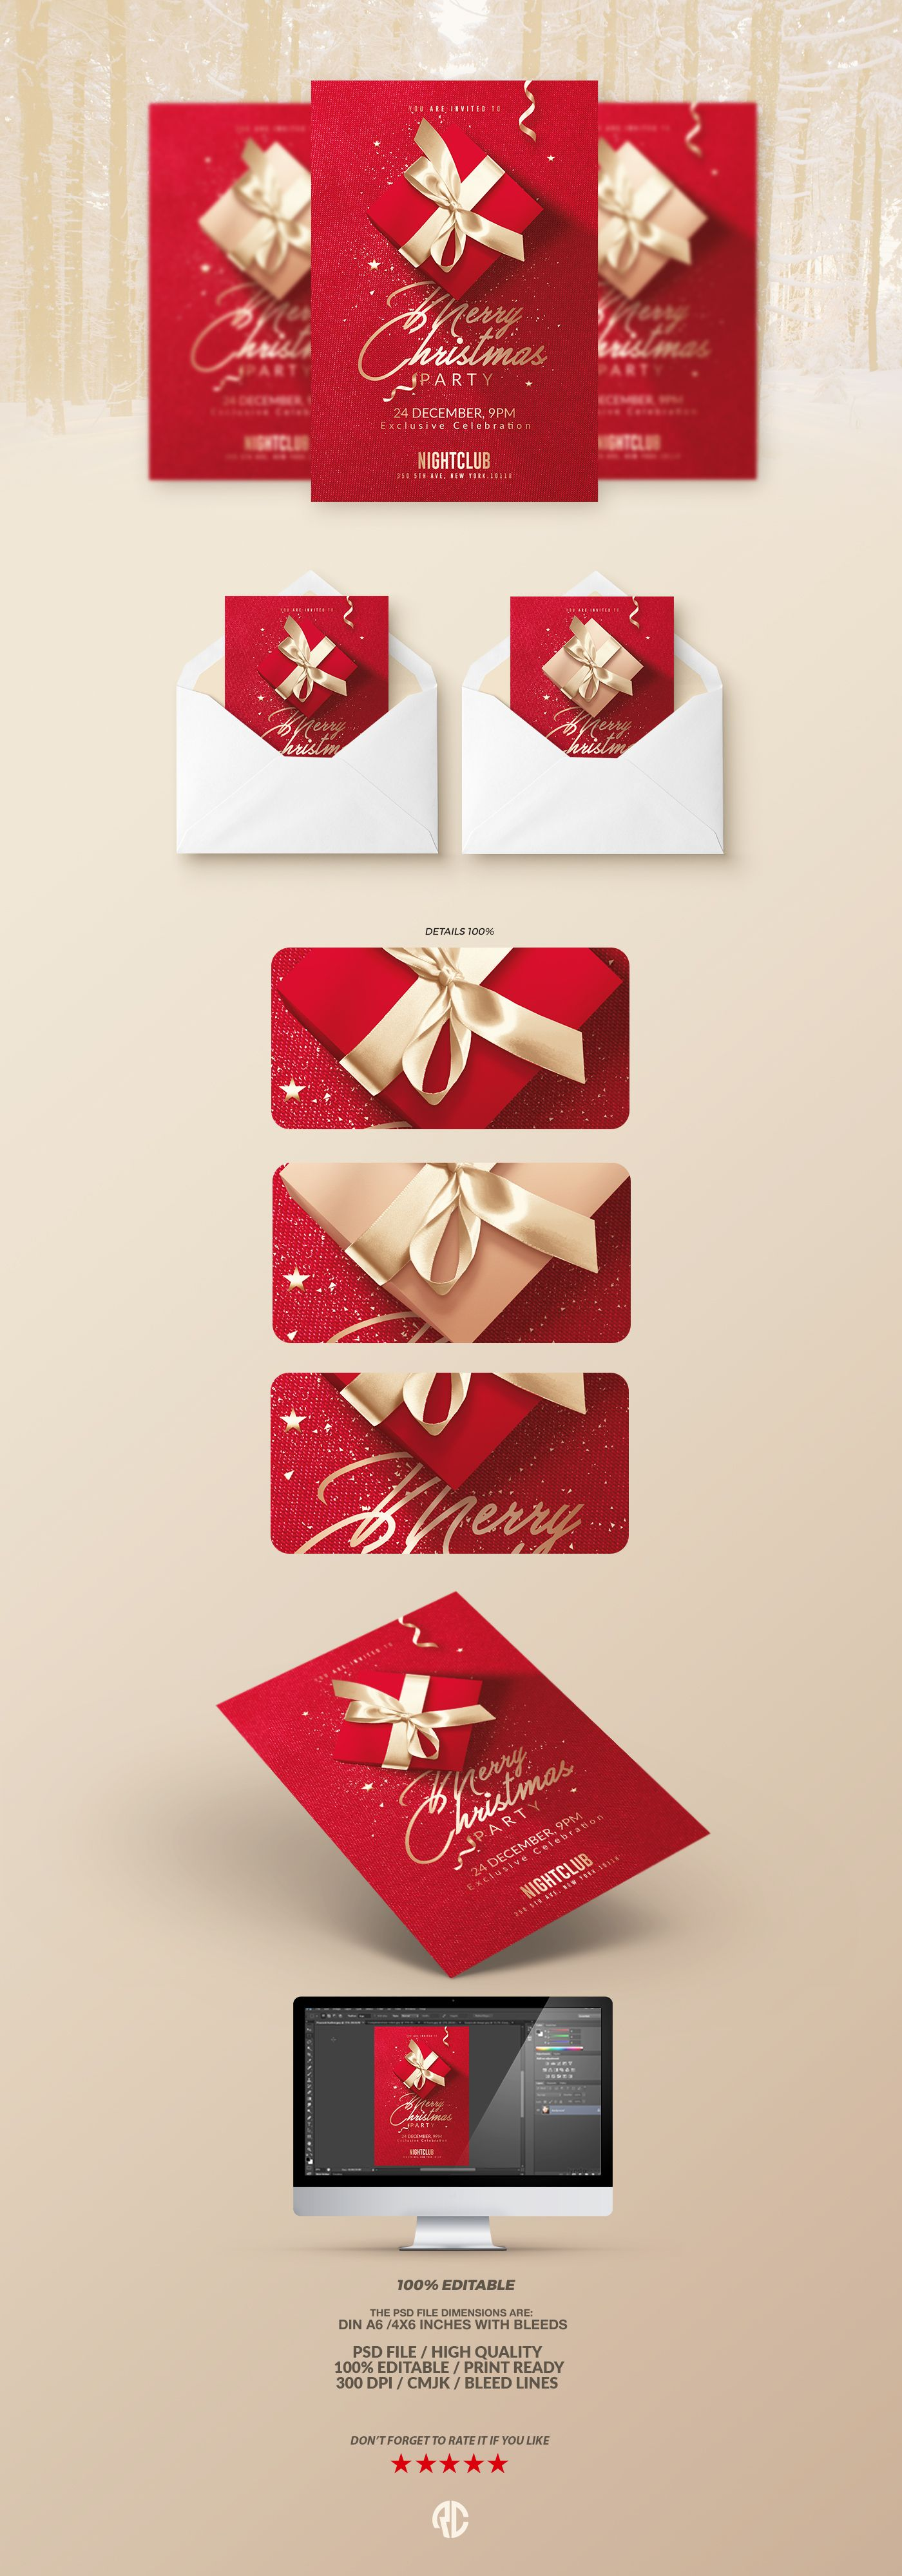 Christmas Invitation  Flyer Templates Psd Files Available  All